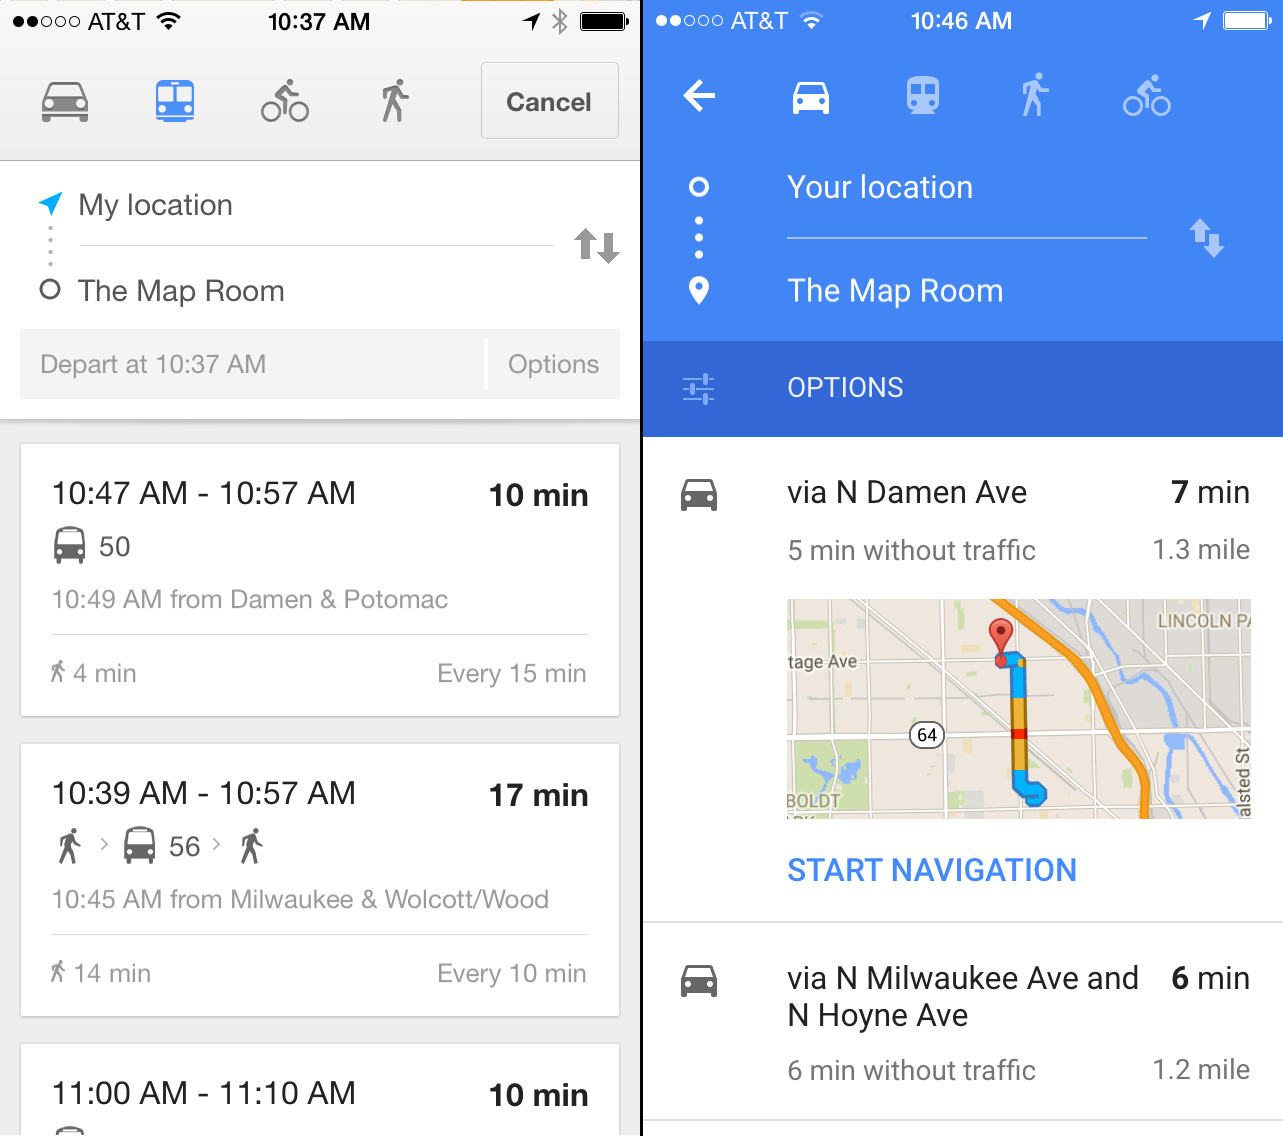 Our Best Look Yet at How Material Design Will Transform Google Apps